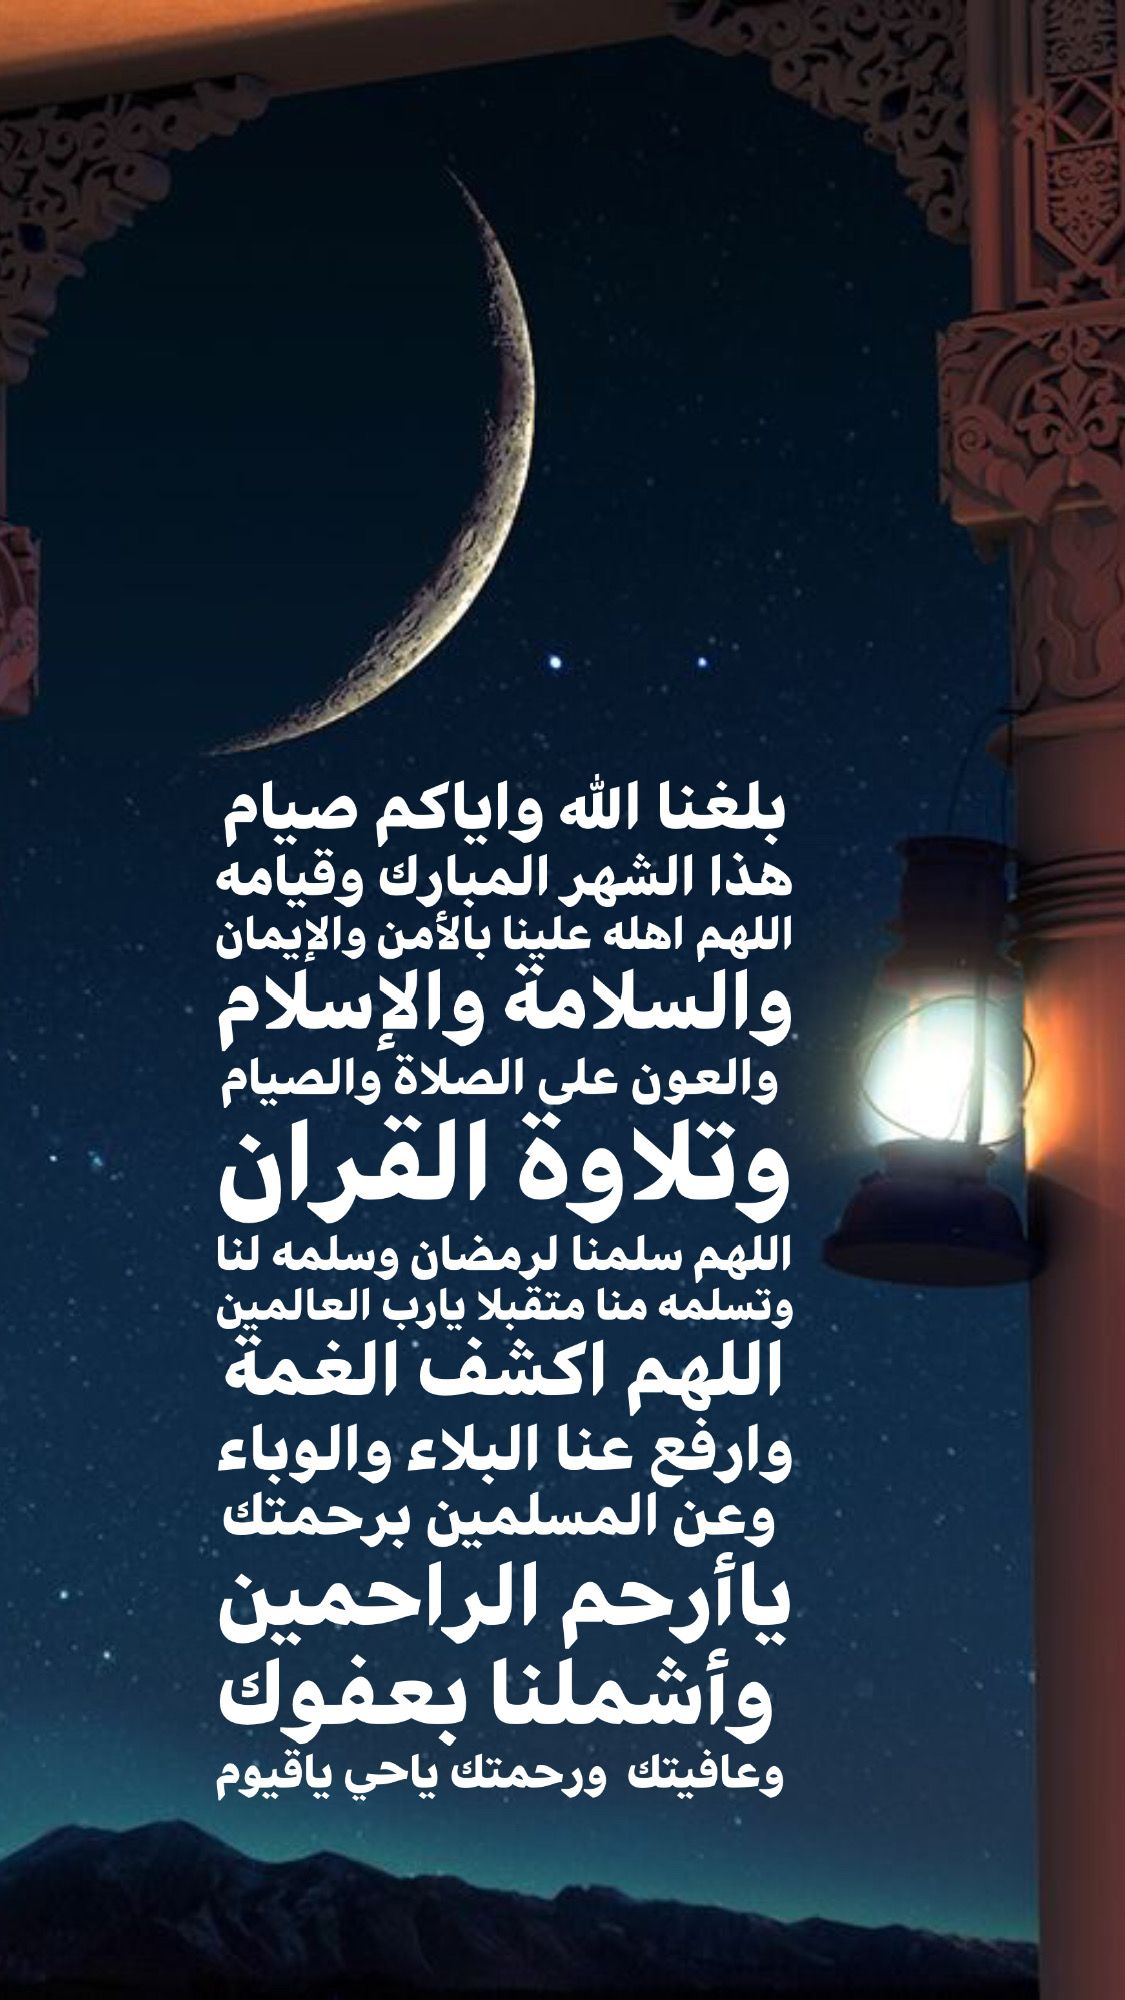 Pin By أدعية وأذكار On شهر رمضان Ramadan Kareem Words Quotes Ramadan